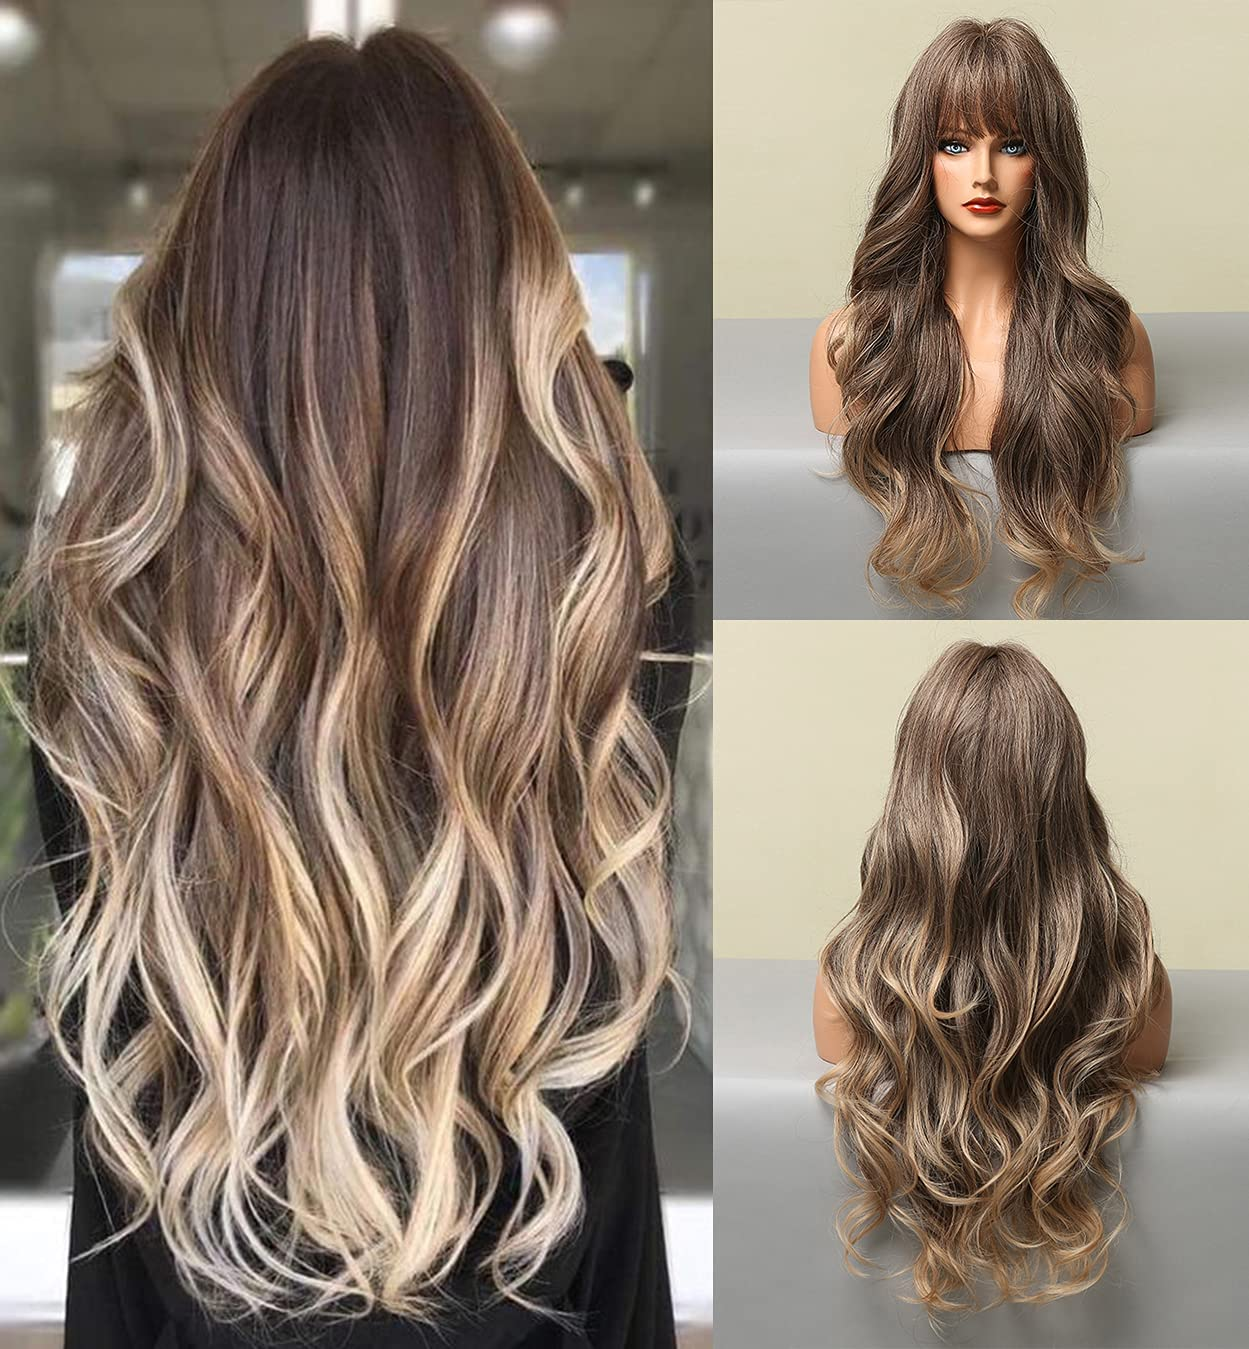 LEMEIZ Ombre Ash Brown Wig with Bangs, Mixed Blonde wig with Bangs, Long Wavy Wigs for Women, Realistic Looking Synthetic Hair Wig 22 inch LANOVA-168